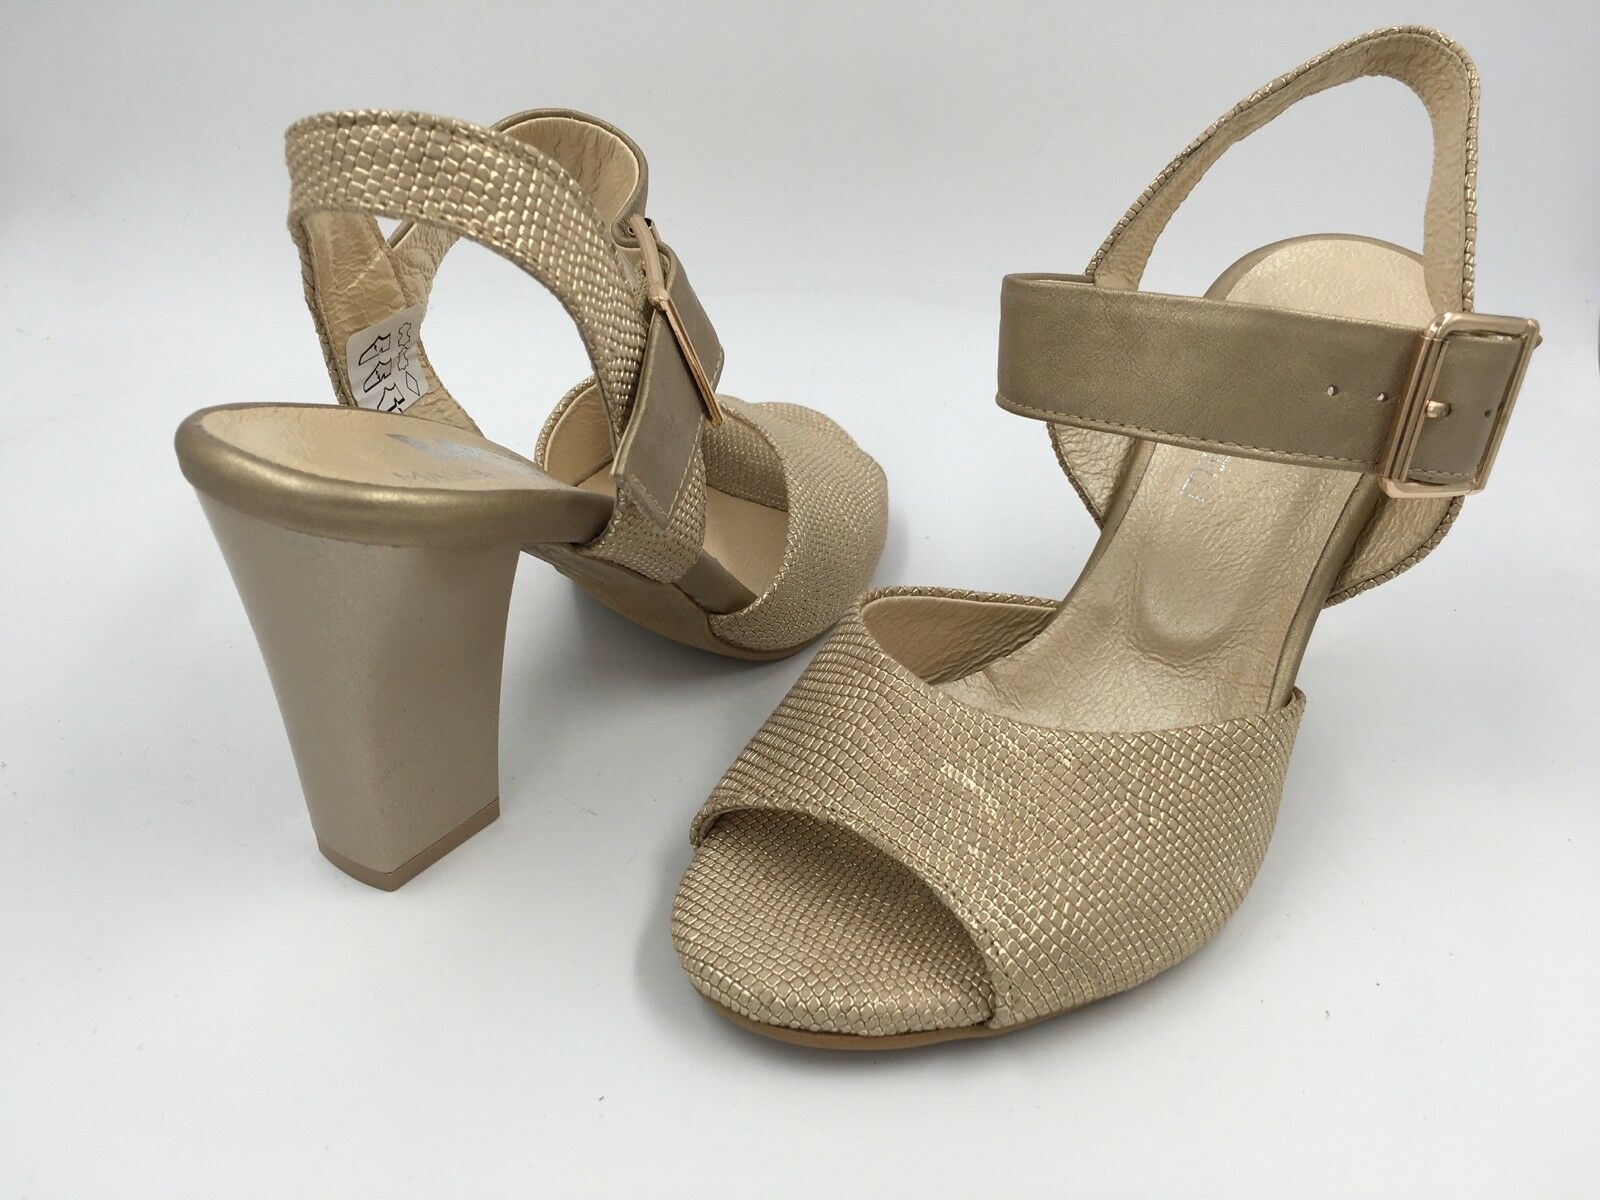 MASSIMO CASTELLI gold TEXTURED BLOCK HEEL SANDALS UK 3.5 EU 36